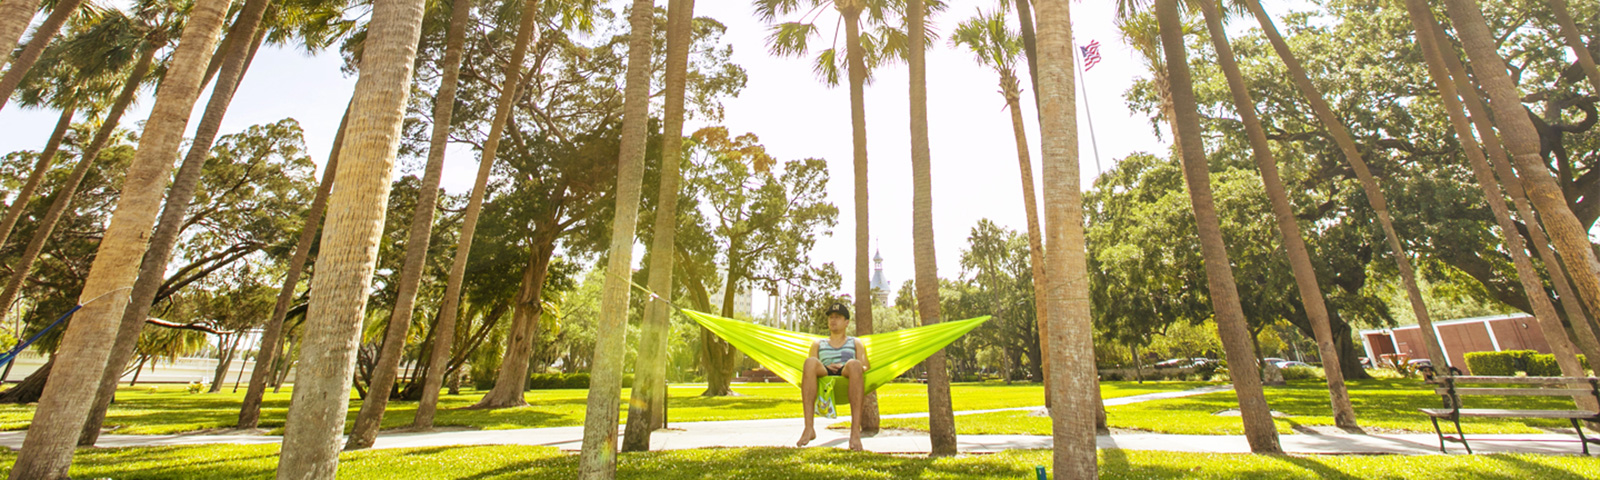 Student in a hammock in Plant Park under palm trees